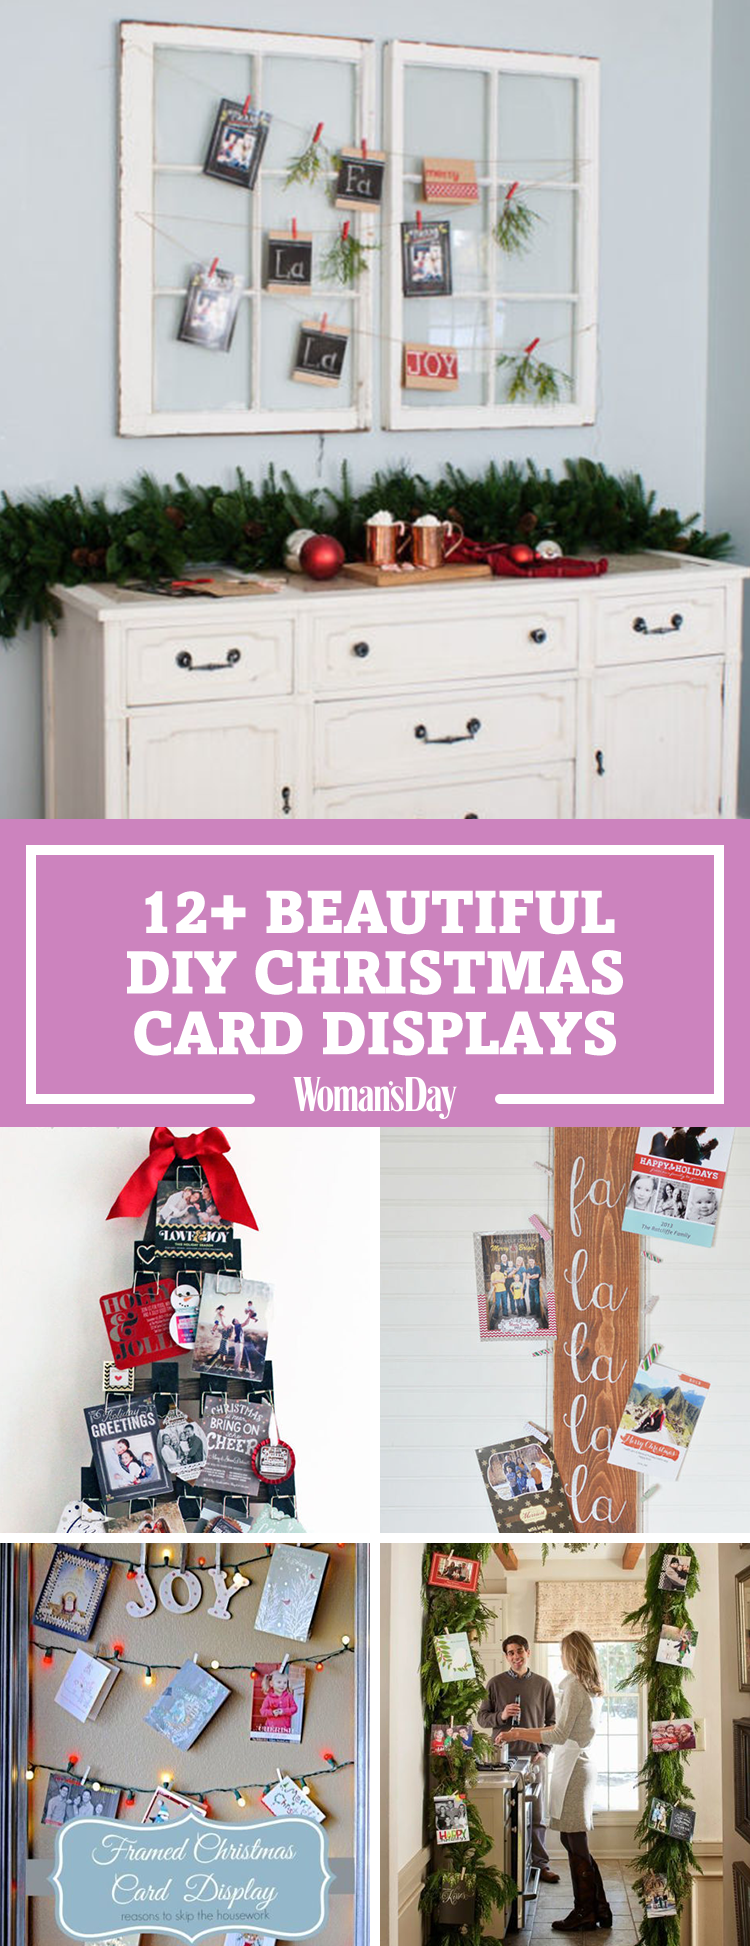 20 diy christmas card holder ideas how to display christmas cards m4hsunfo